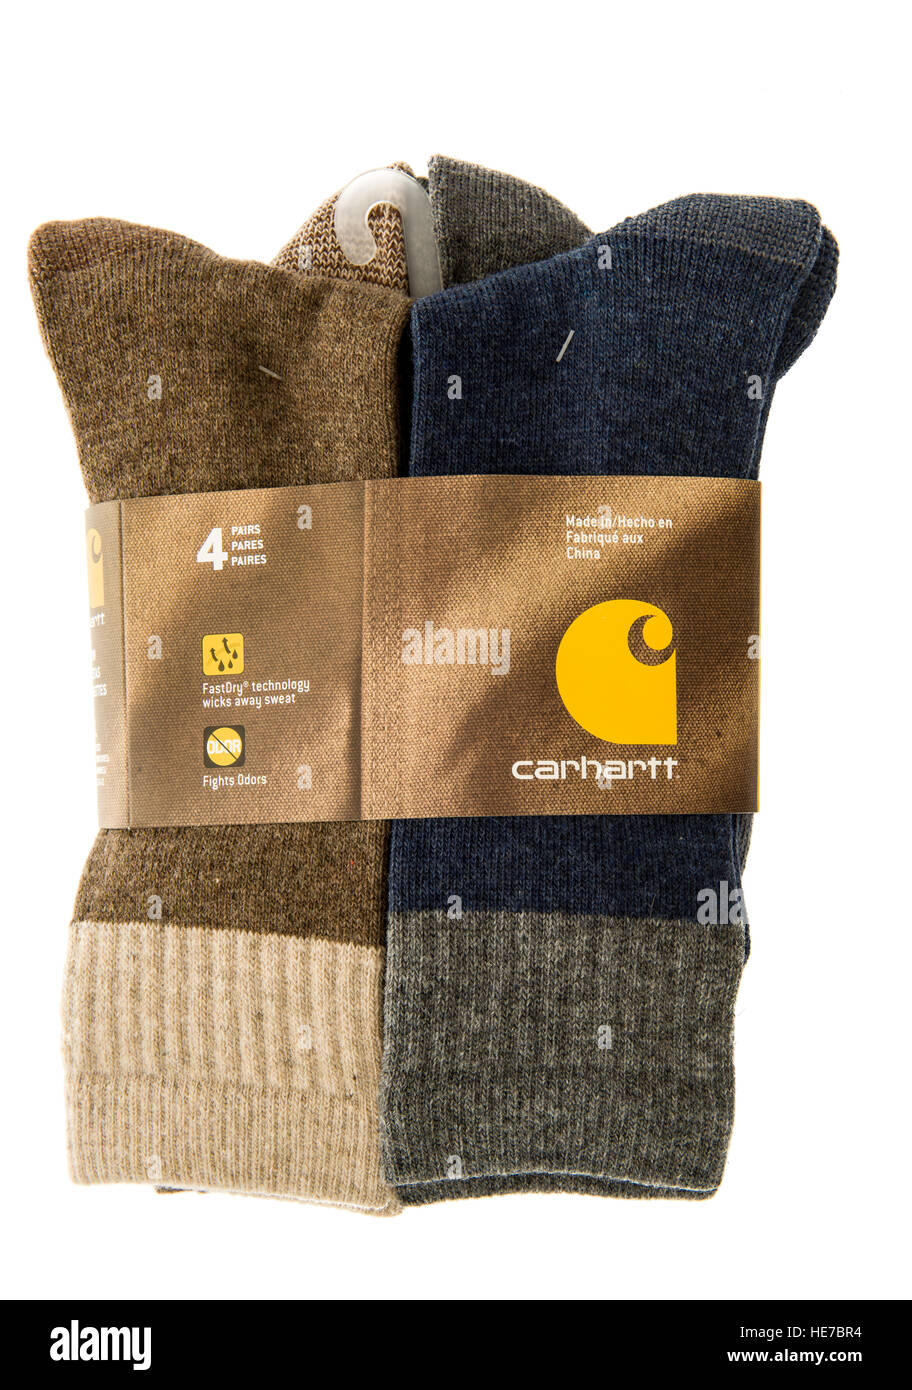 Winneconne, WI - 13 December 2016:  Package of Carhartt socks with fastdry tochnology that wicks away sweat on an - Stock Image